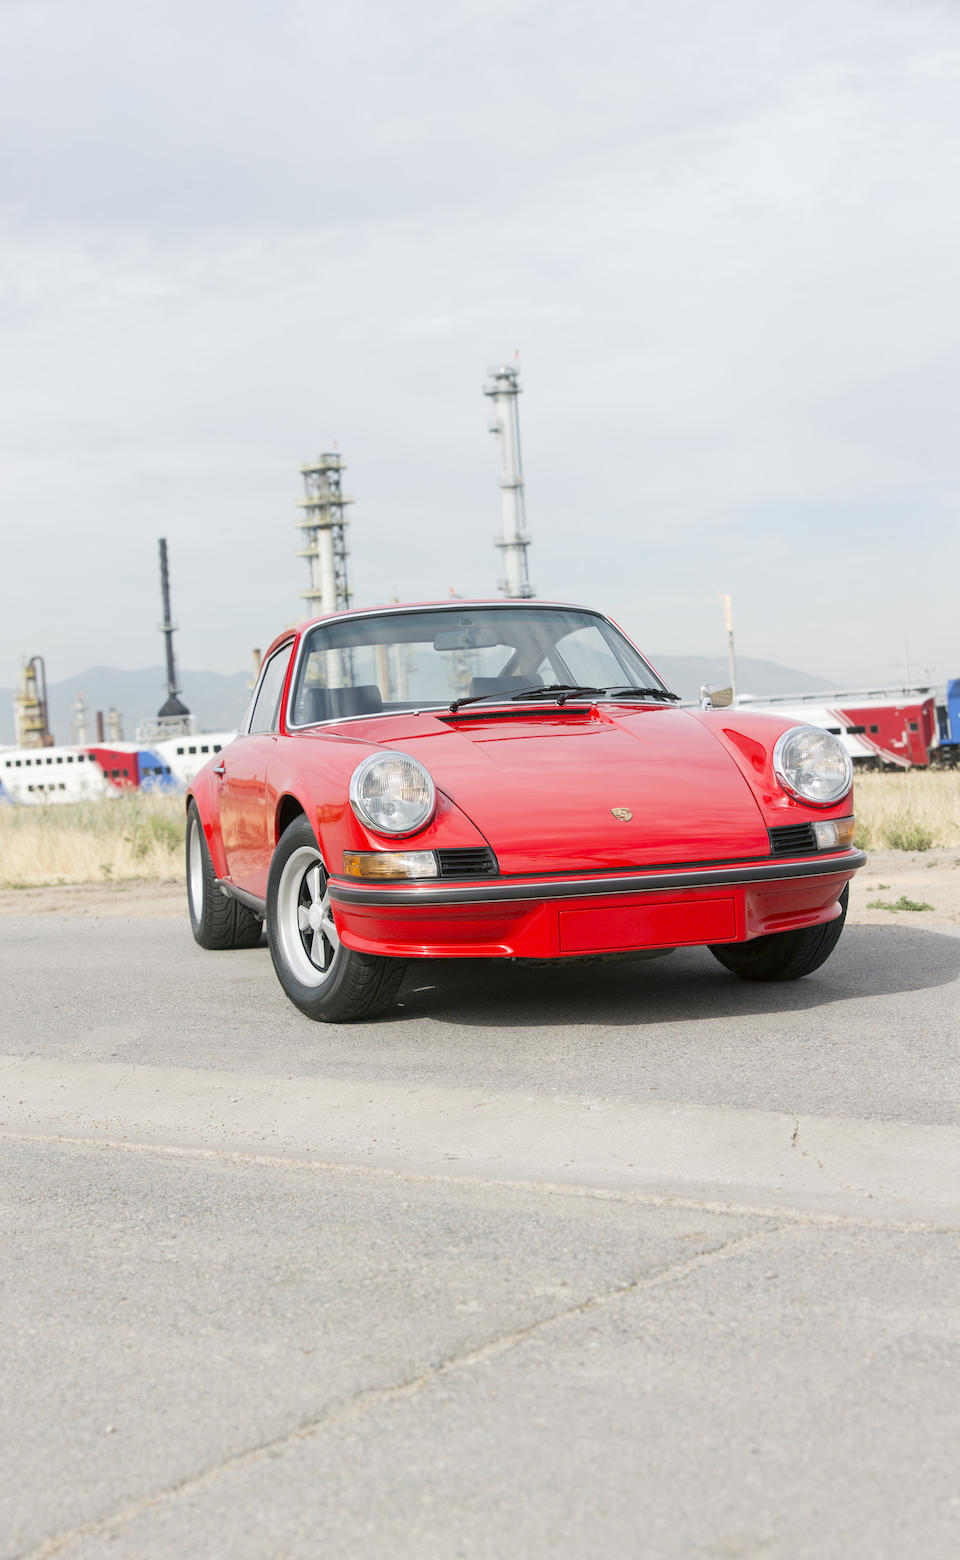 <b>1973 PORSCHE 911 CARRERA RS 2.7  </b><br />Chassis no. 9113600125 <br />Engine no. 6630156